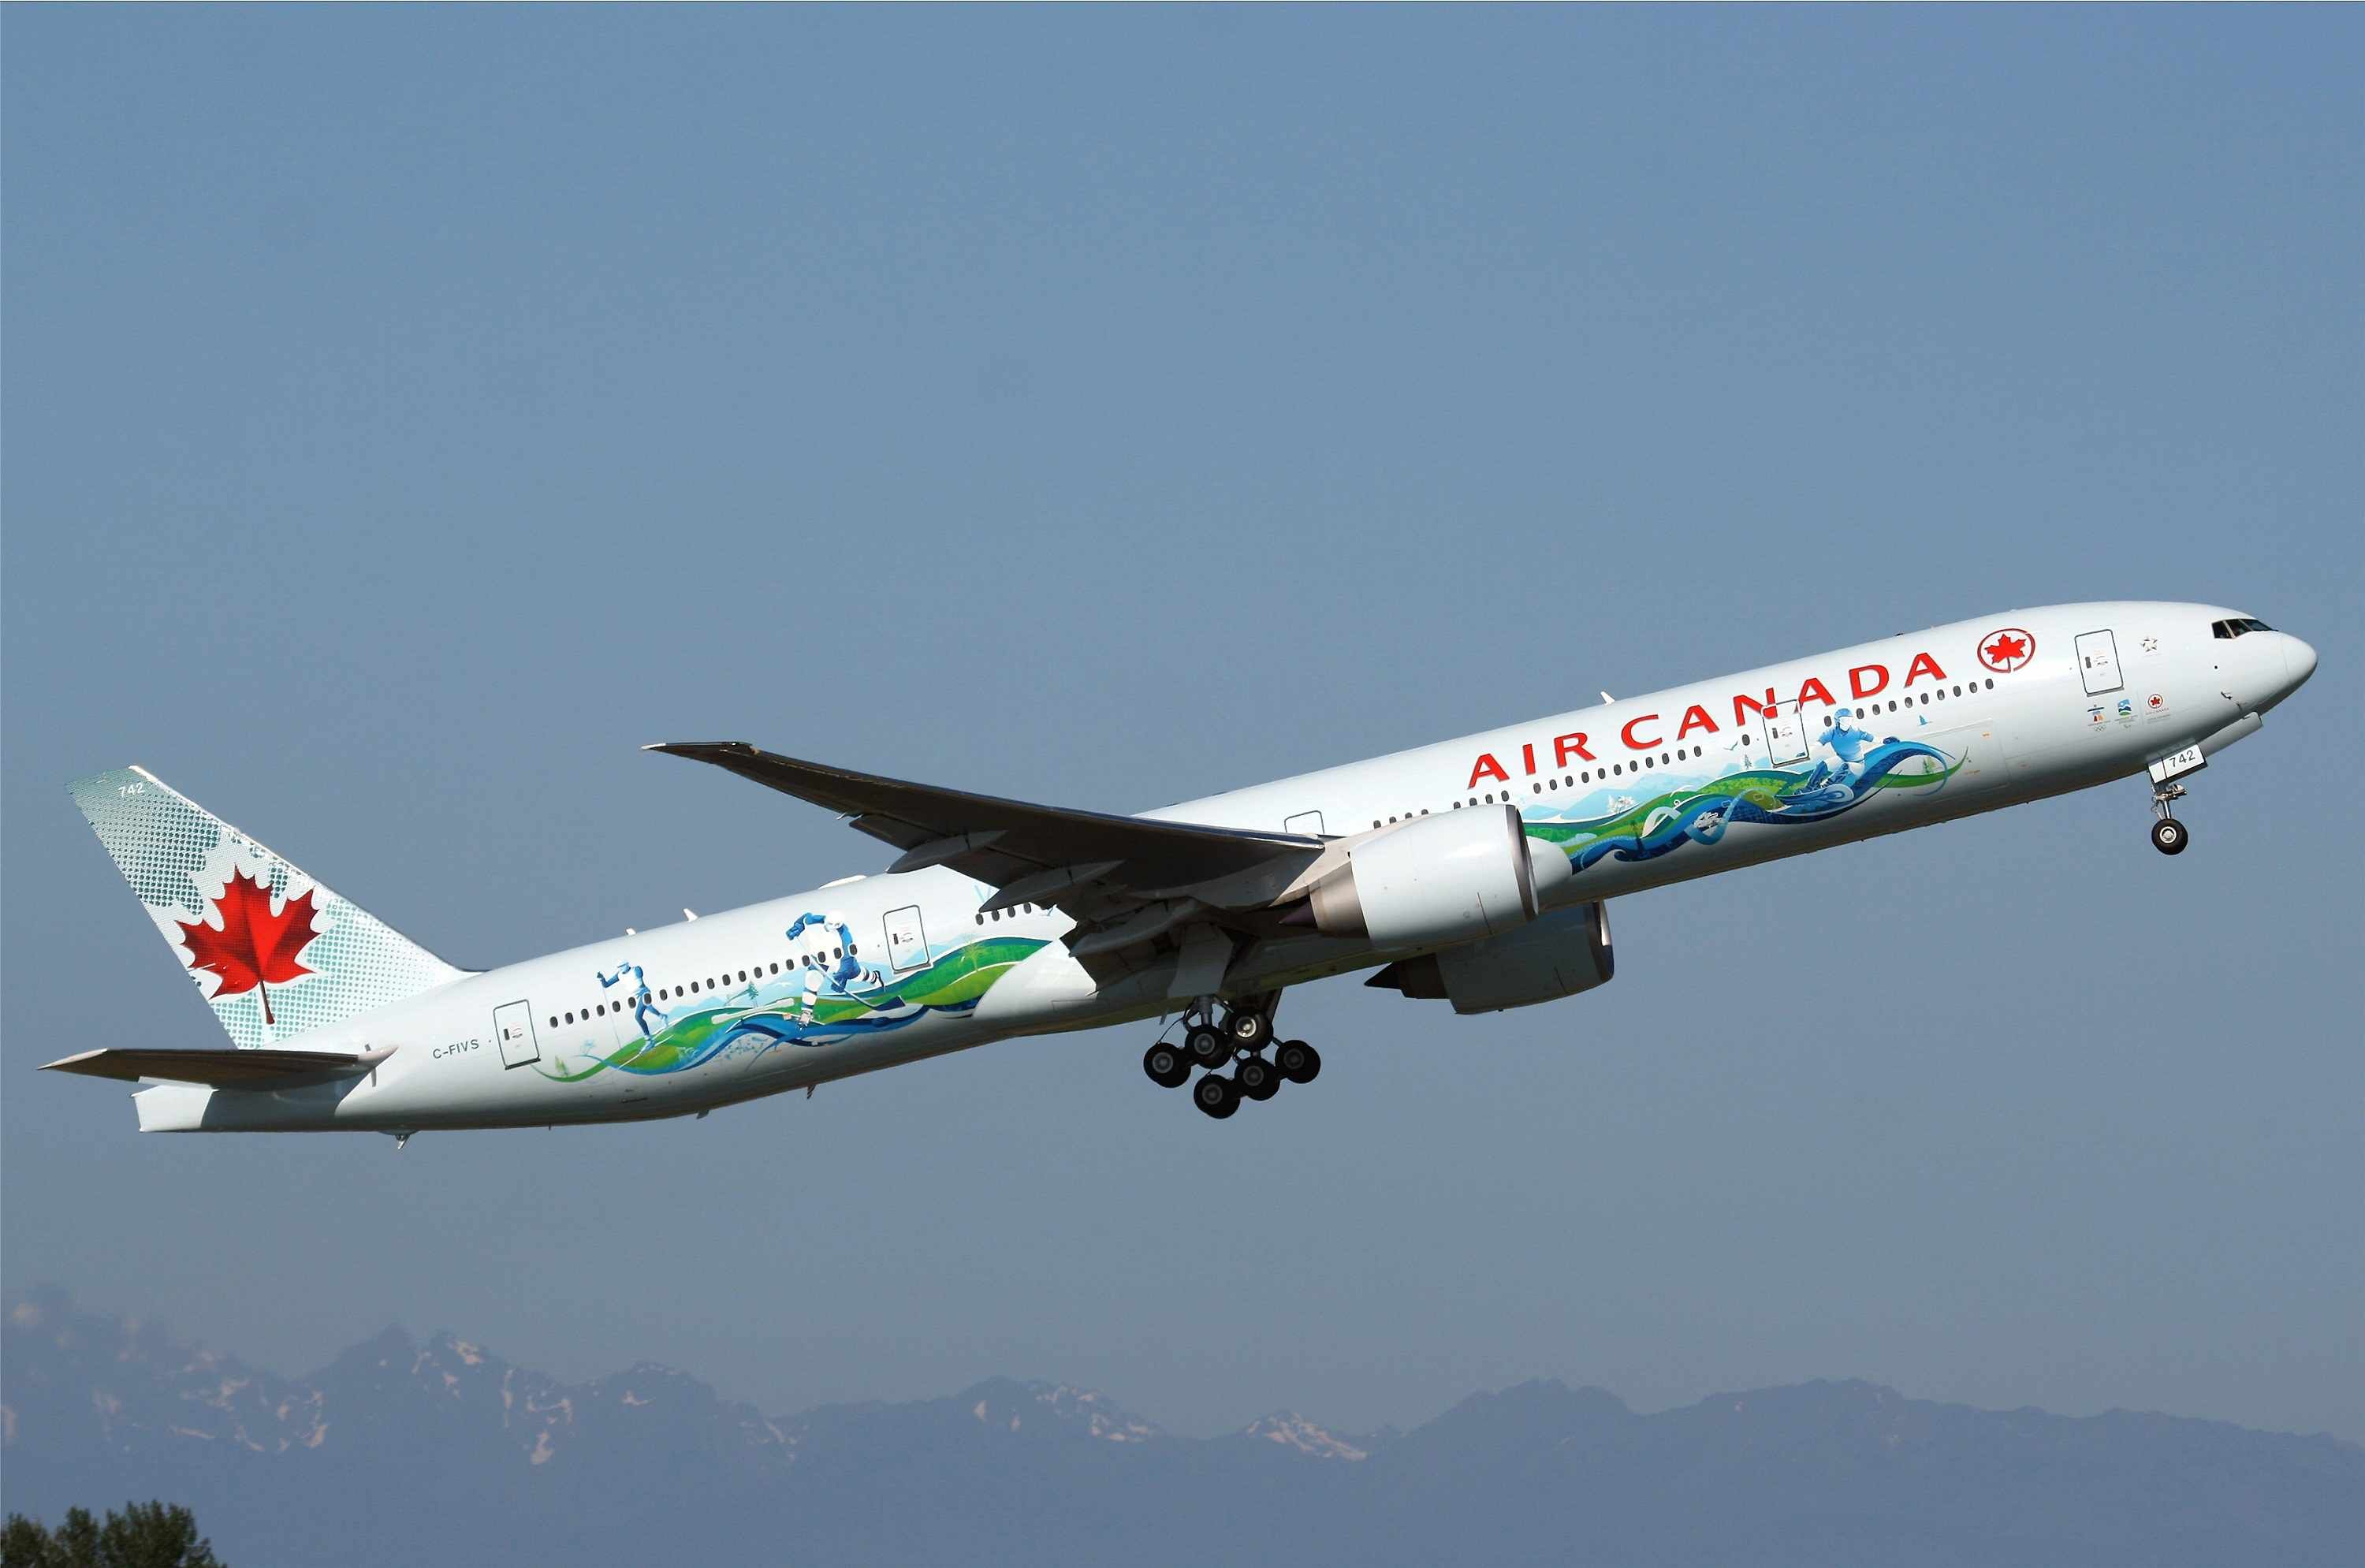 Air Canada, Boeing 777300ER (2010 Winter Olympics livery